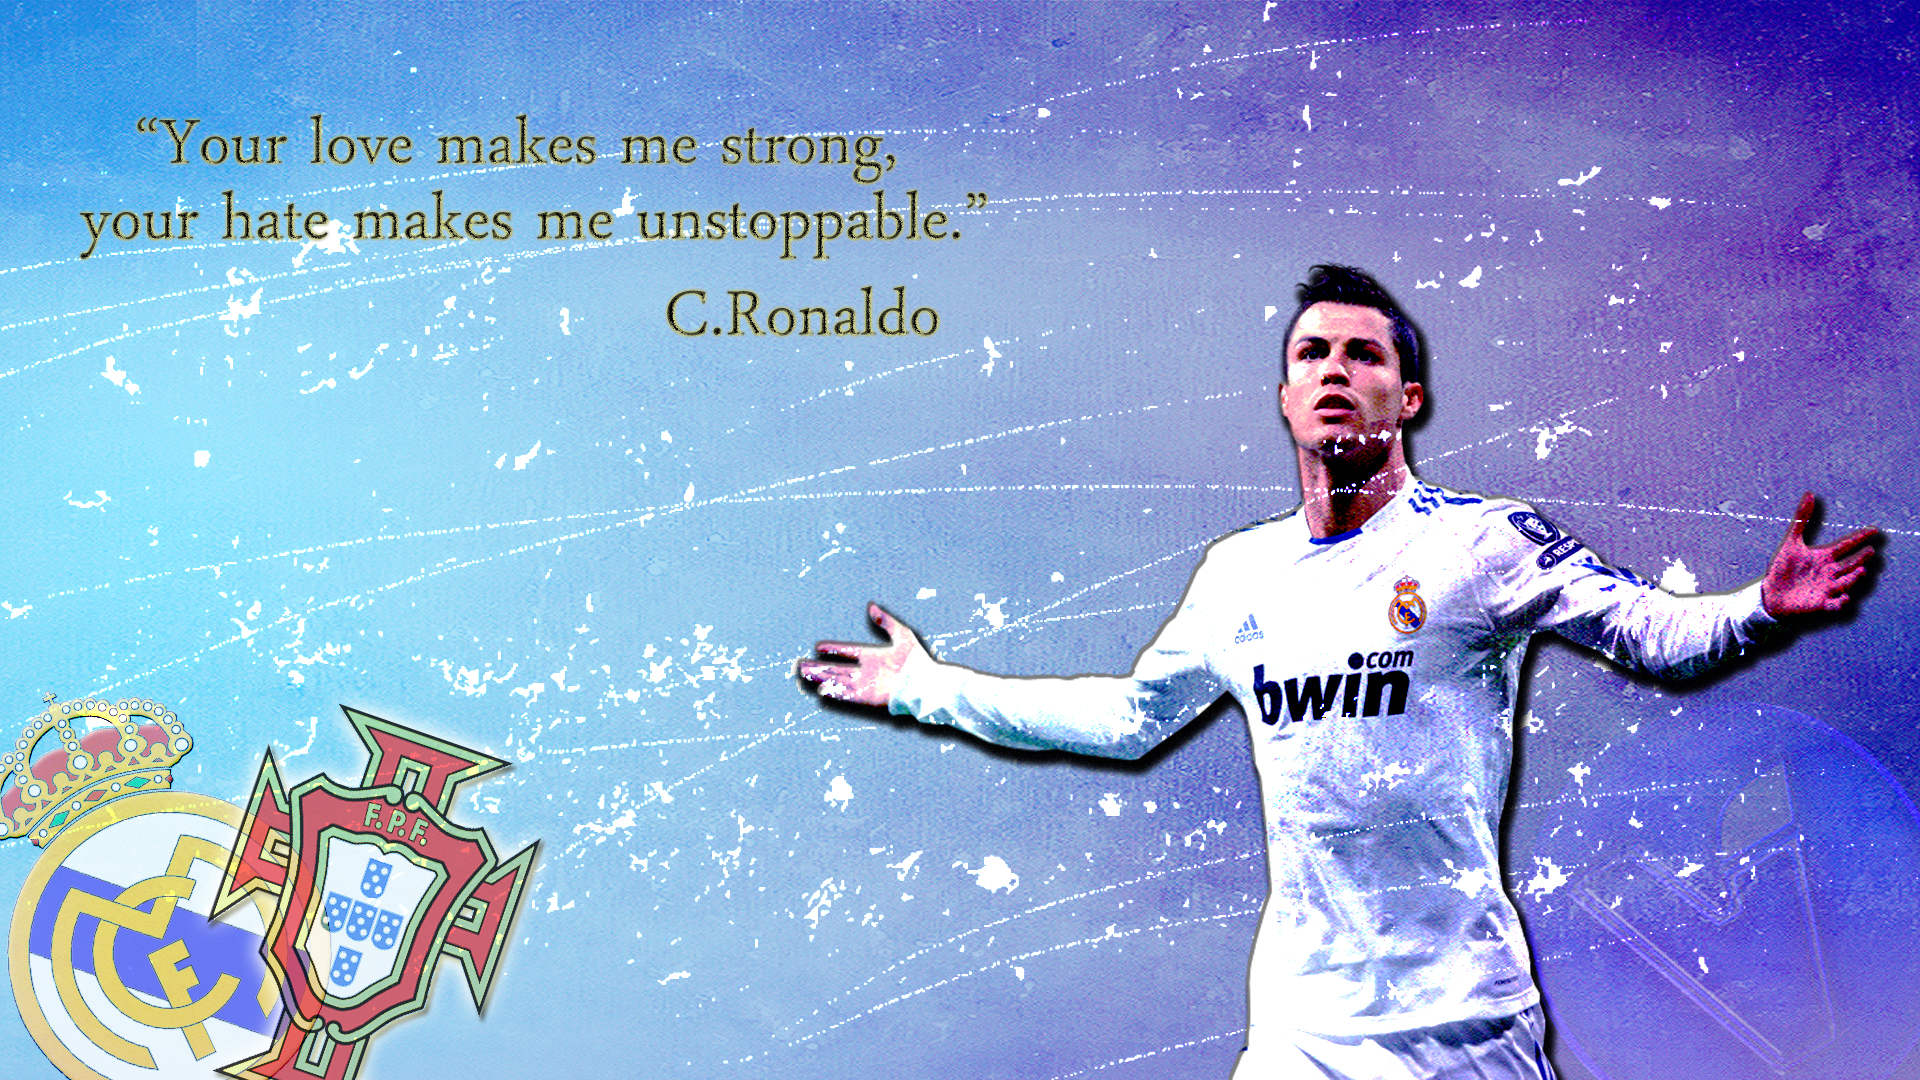 Cristiano ronaldo quotes wallpaper quotesgram for Cristiano ronaldo wall mural